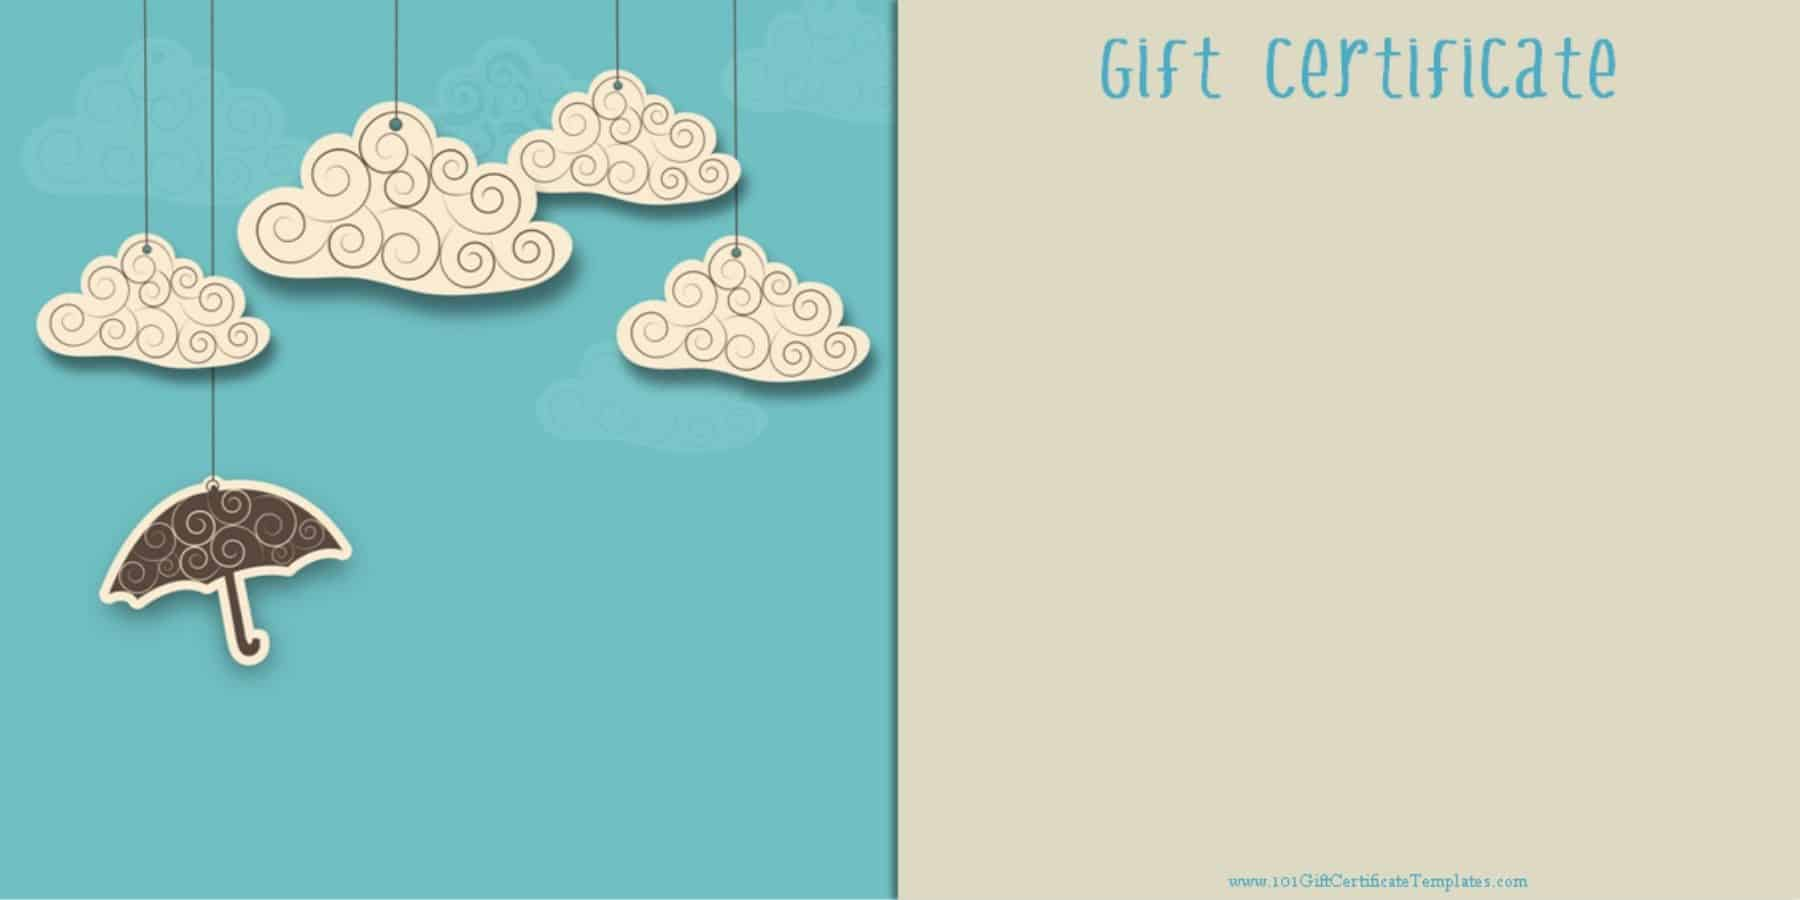 Printable Gift Certificate Templates free printable gift card which you can customize before you print